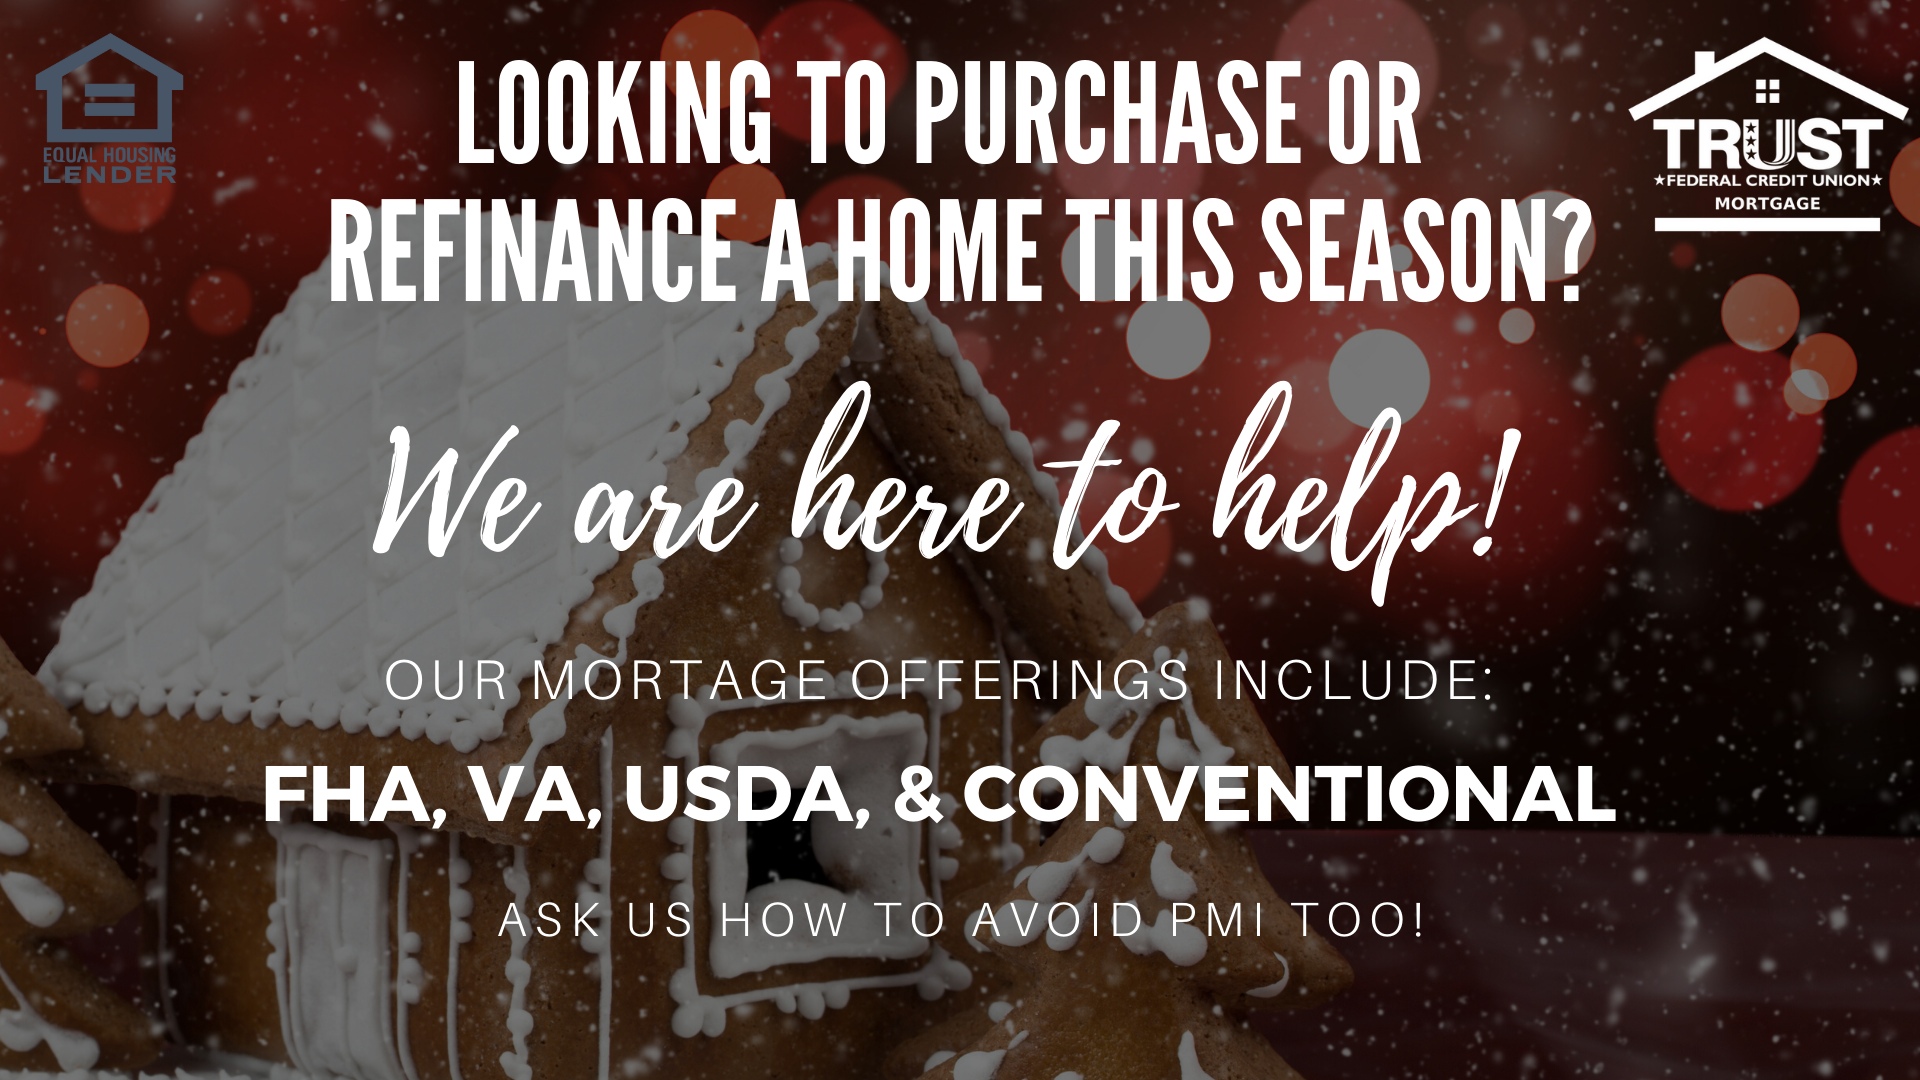 Looking to purchase or refinance a home this season?  We are here to help!